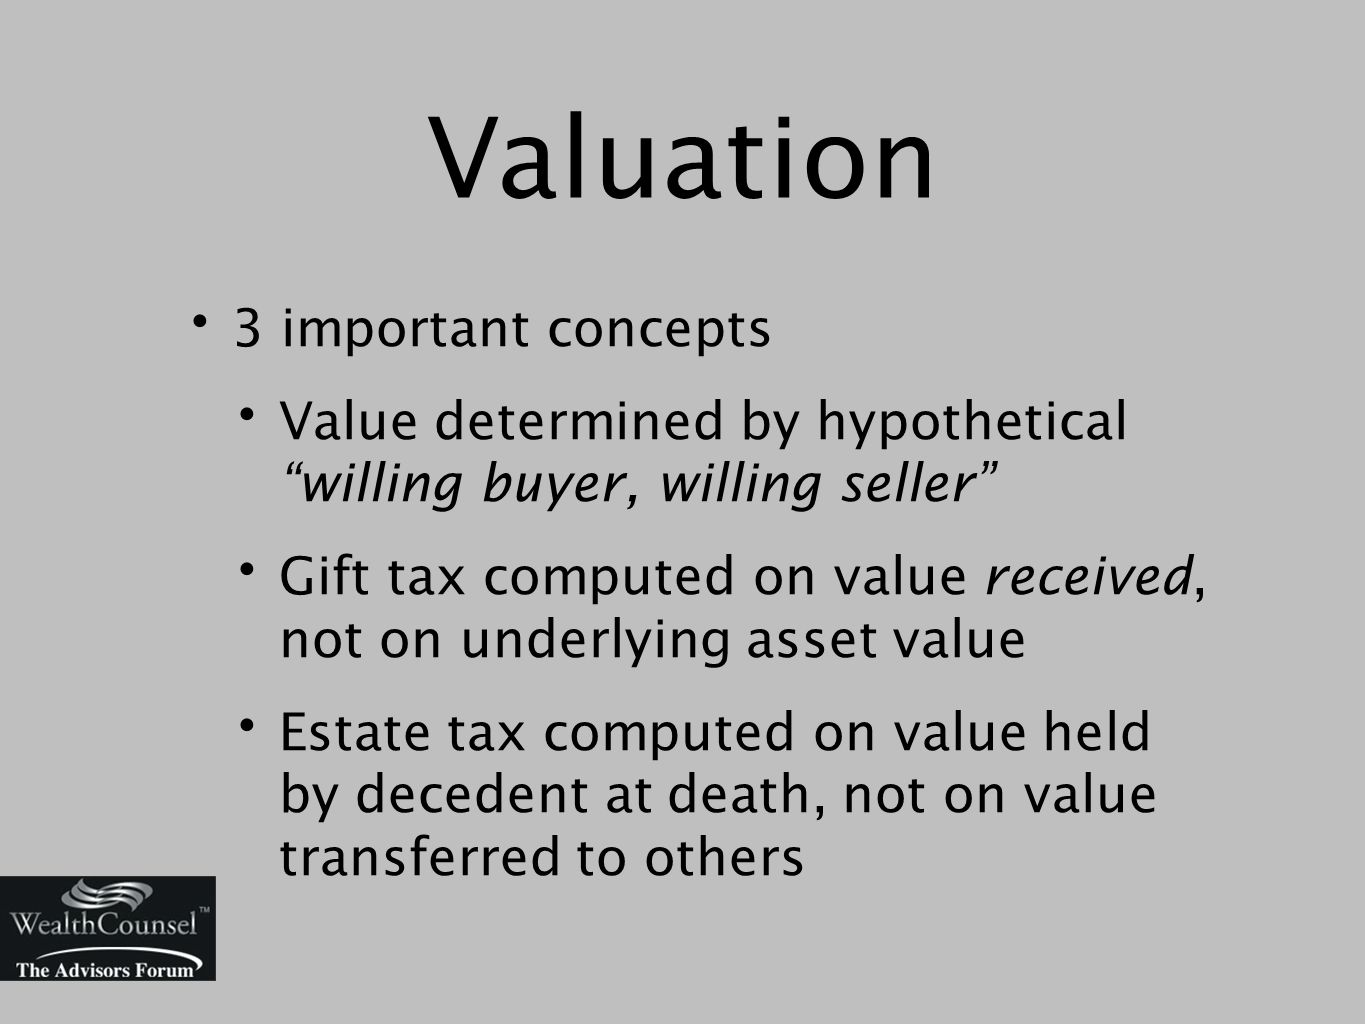 Valuation 3 important concepts Value determined by hypothetical willing buyer, willing seller Gift tax computed on value received, not on underlying asset value Estate tax computed on value held by decedent at death, not on value transferred to others